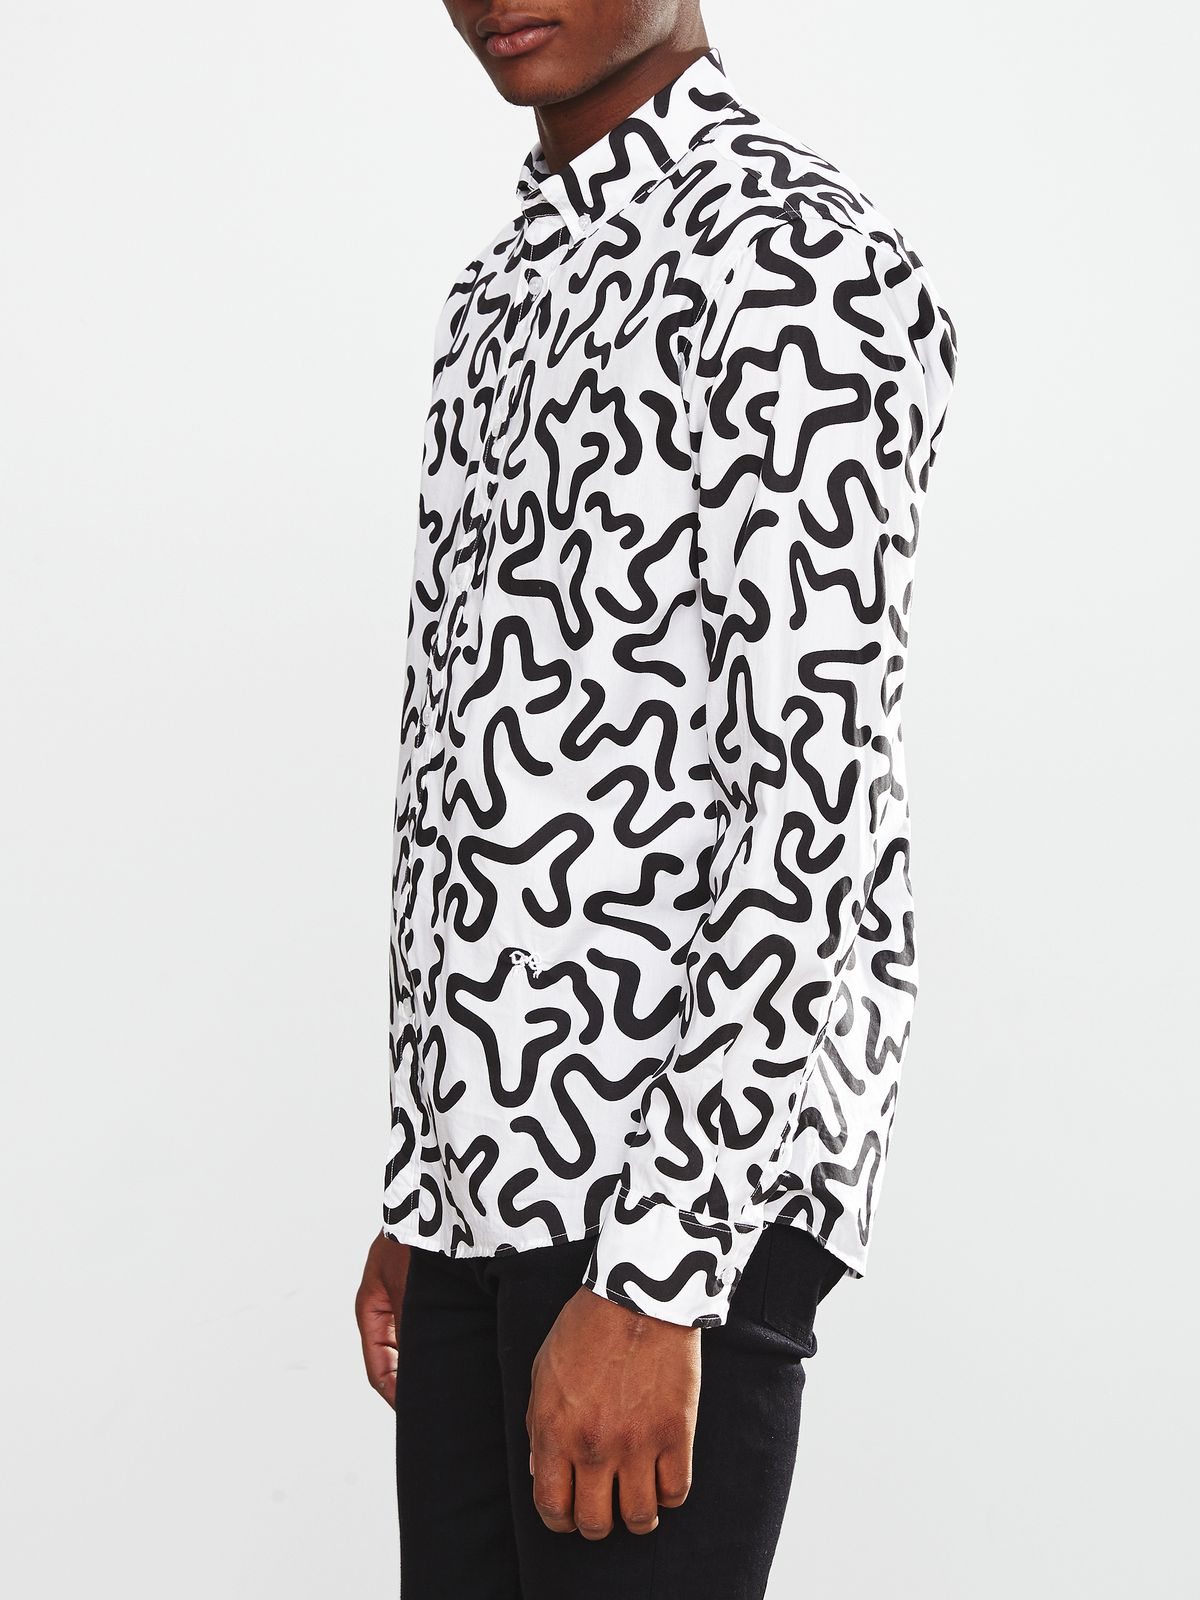 Concrete+Water men's button up white shirt with black squiggly pattern